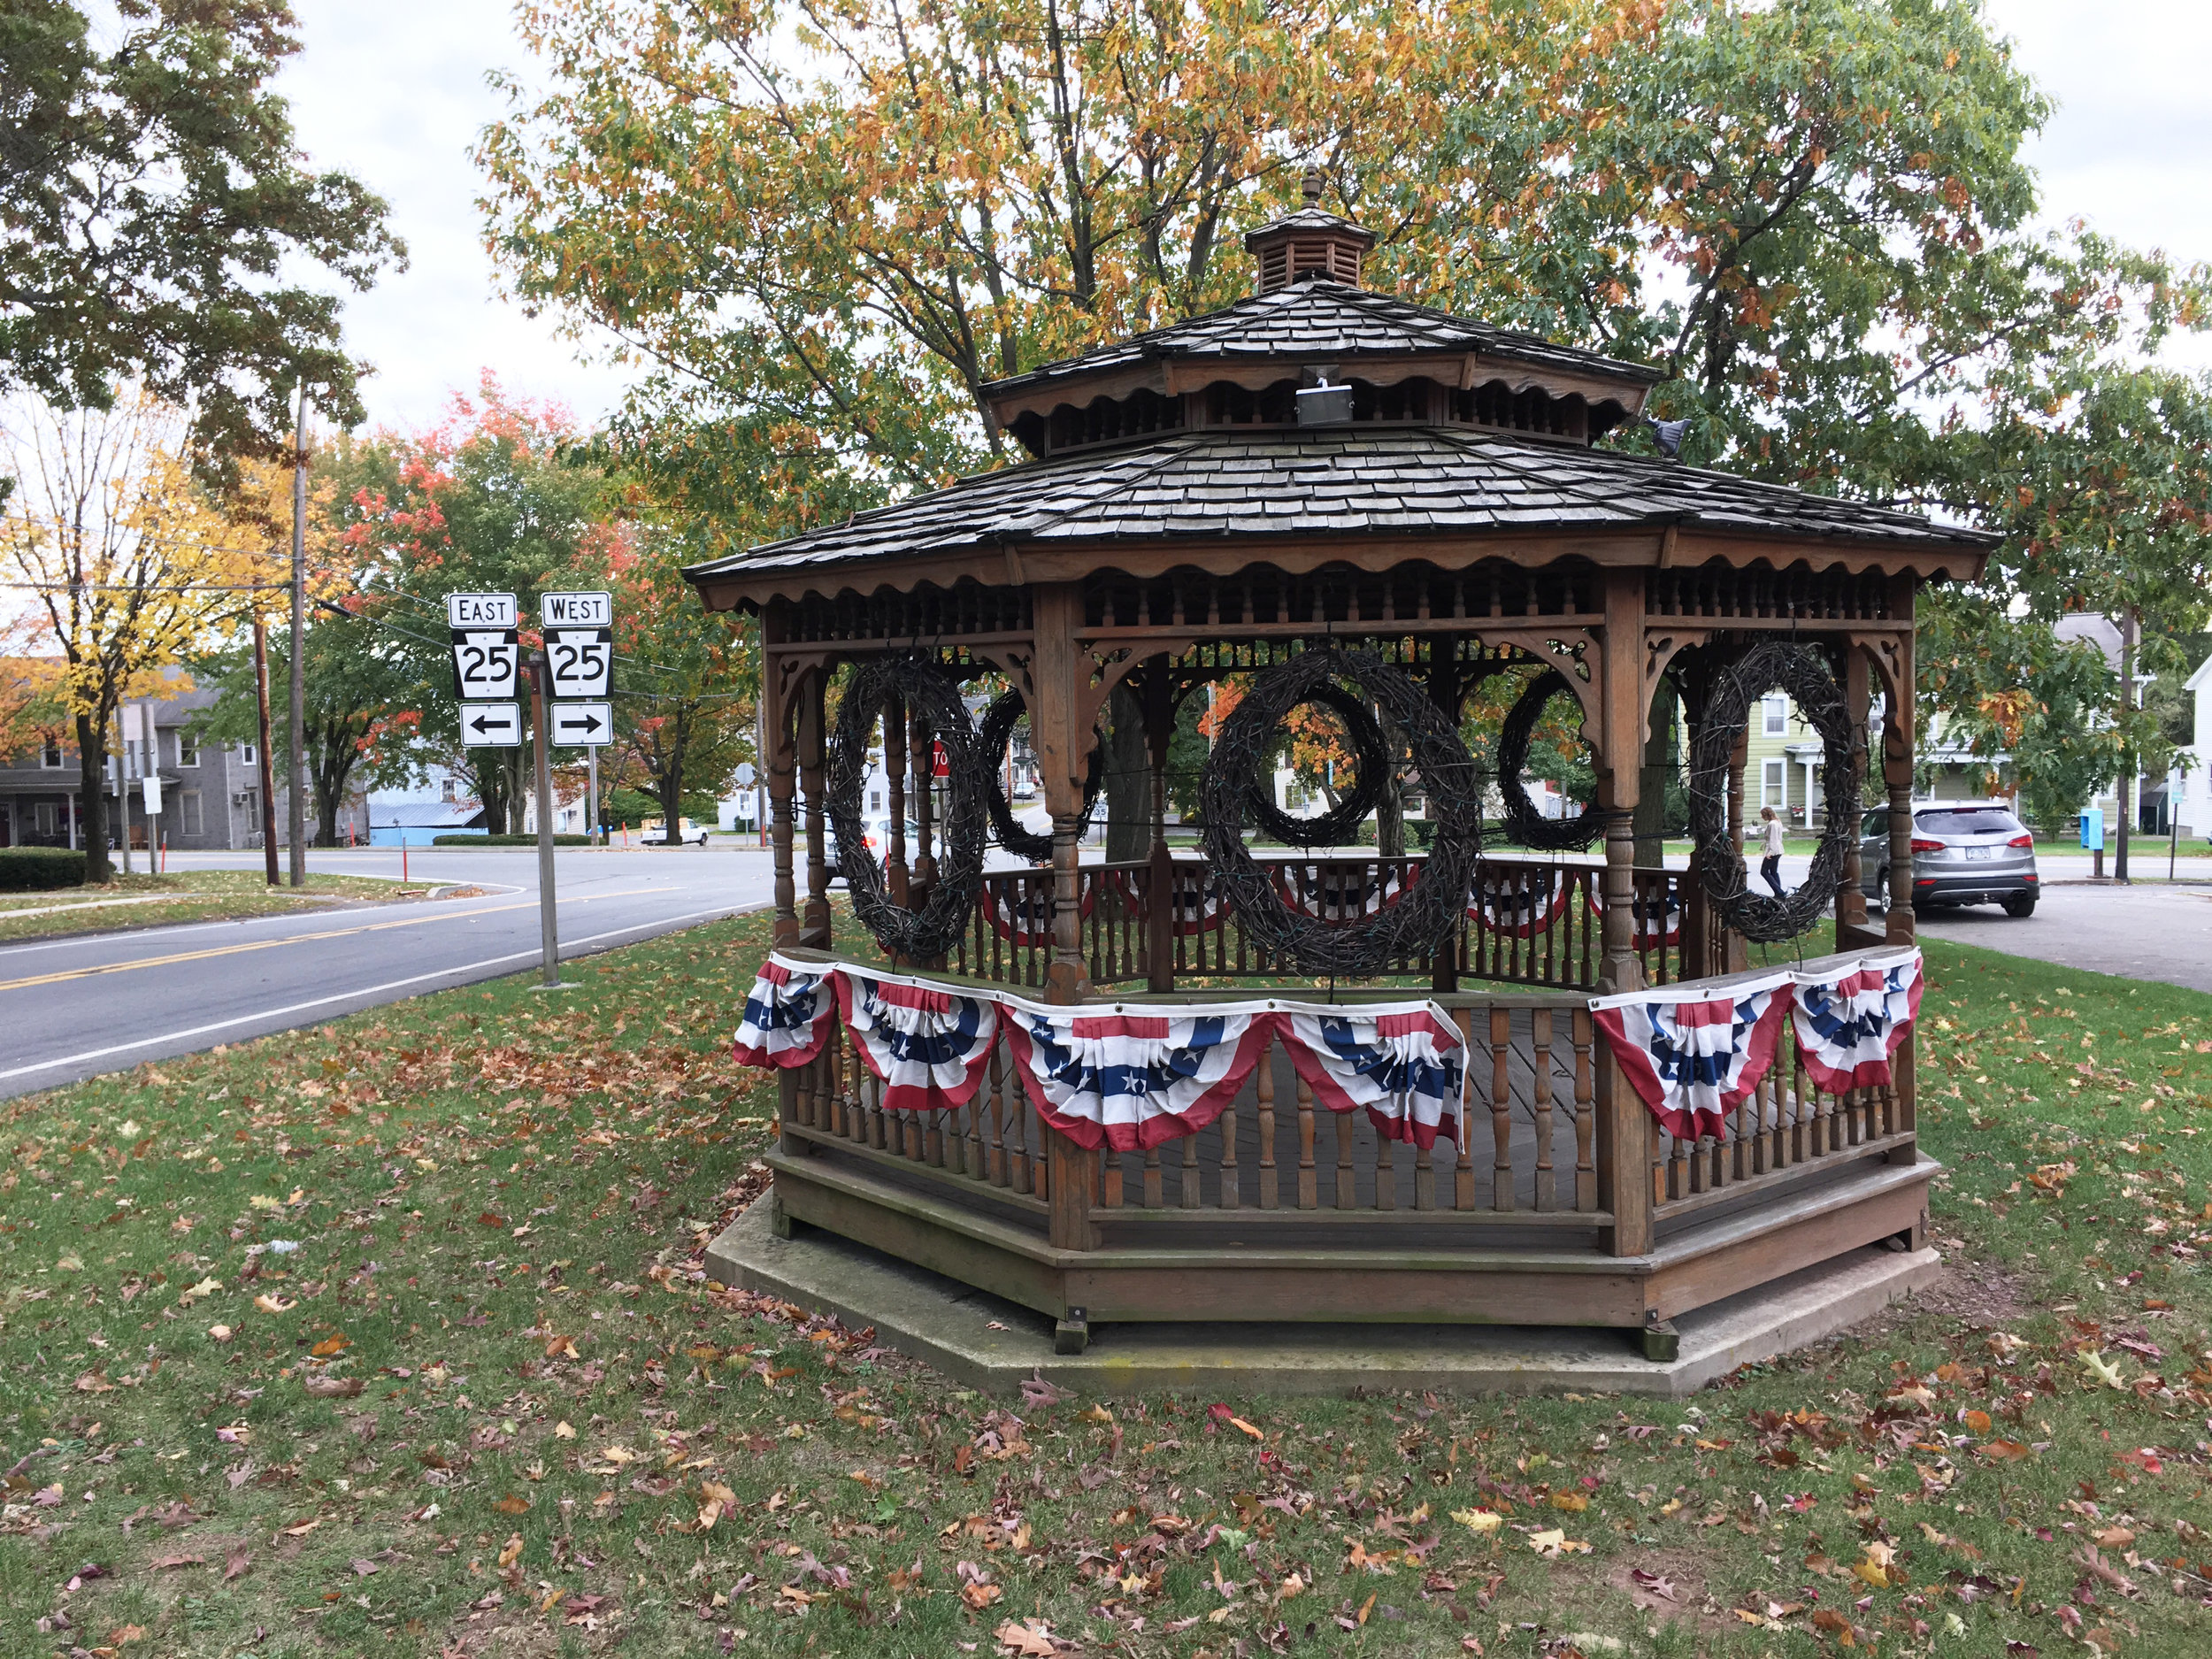 Berrysburg Borough gazebo